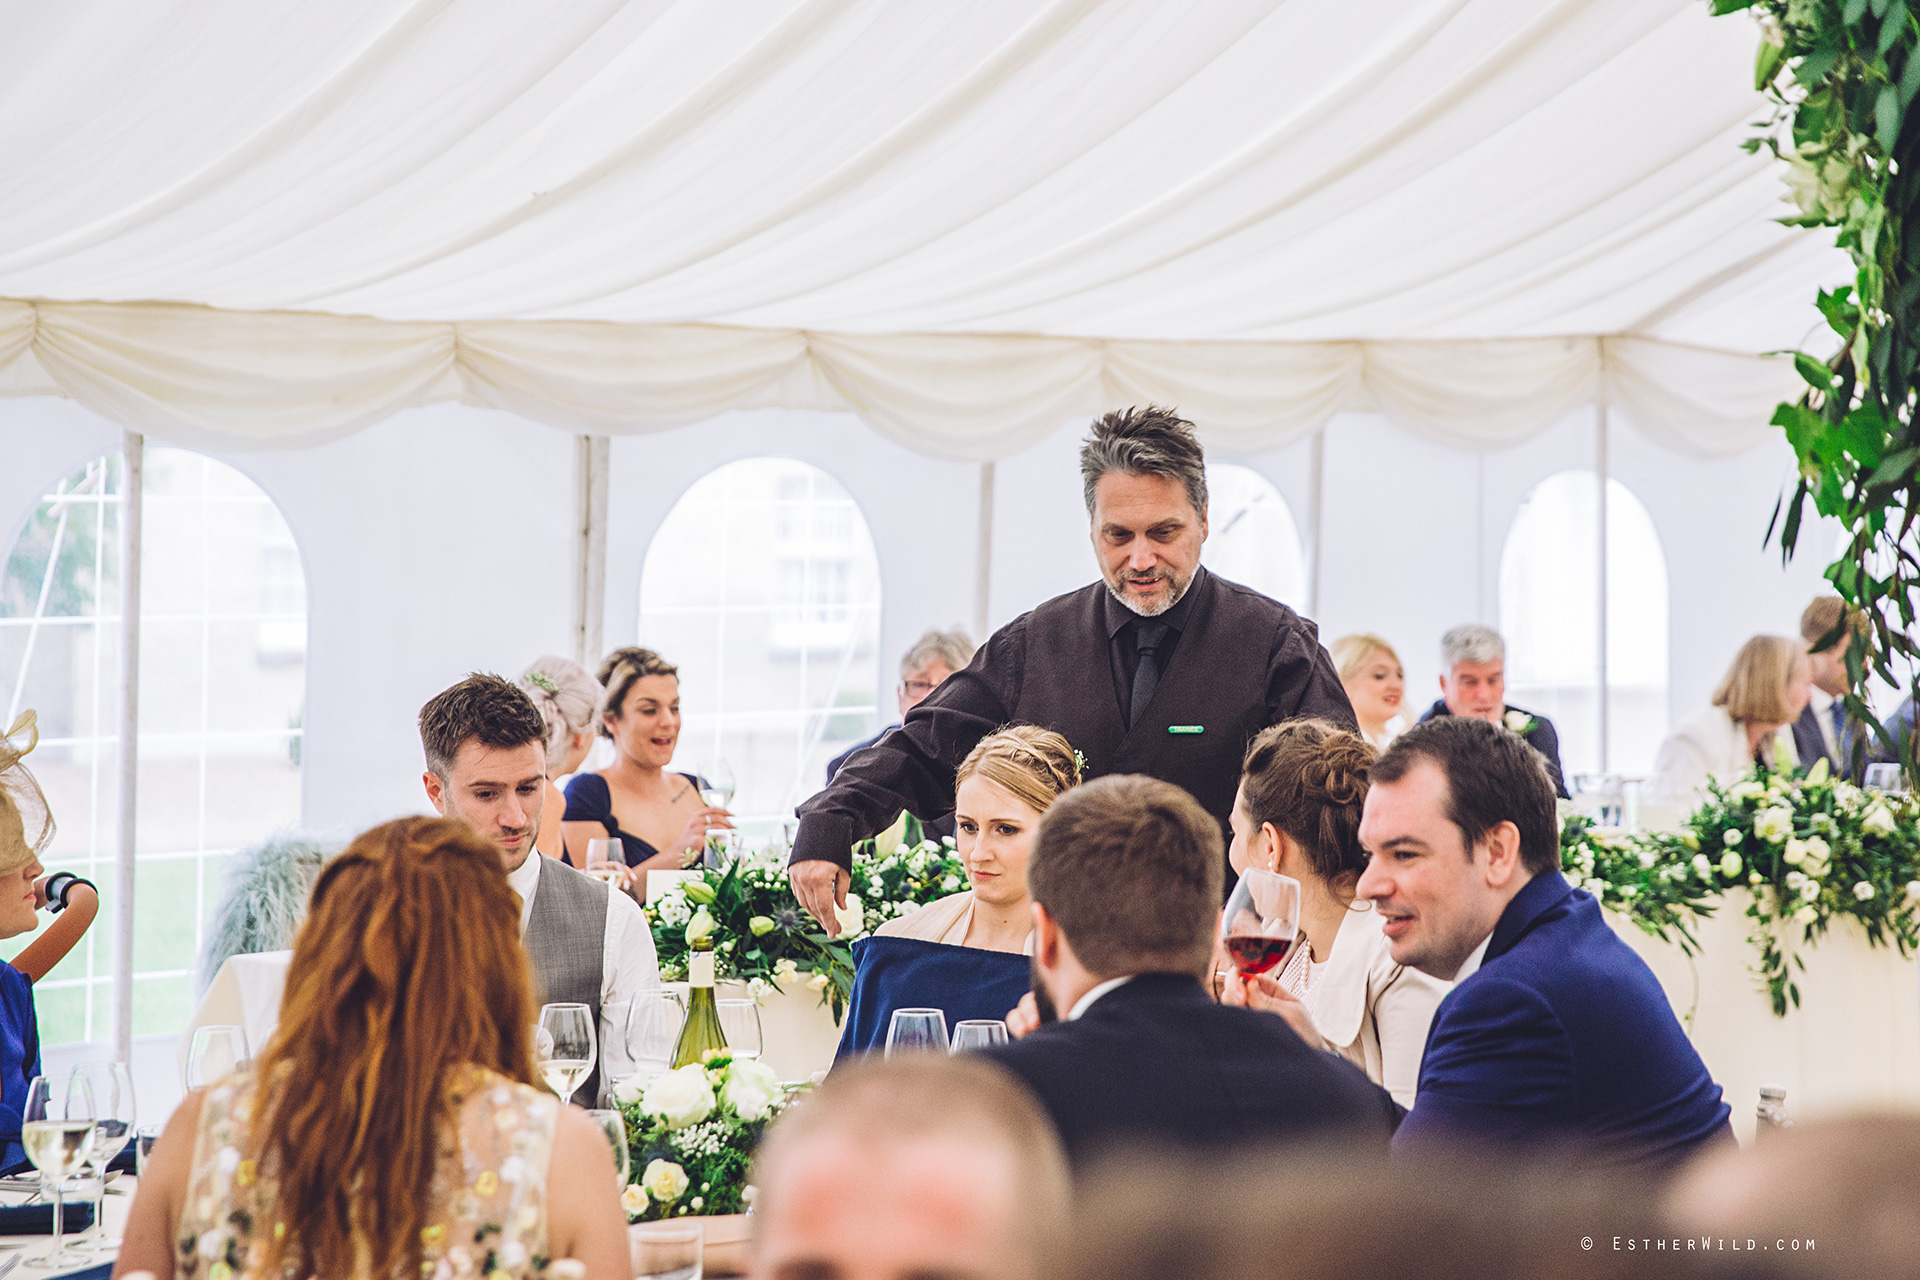 All was not as it appeared at the wedding breakfast... open the images to see what was going on...